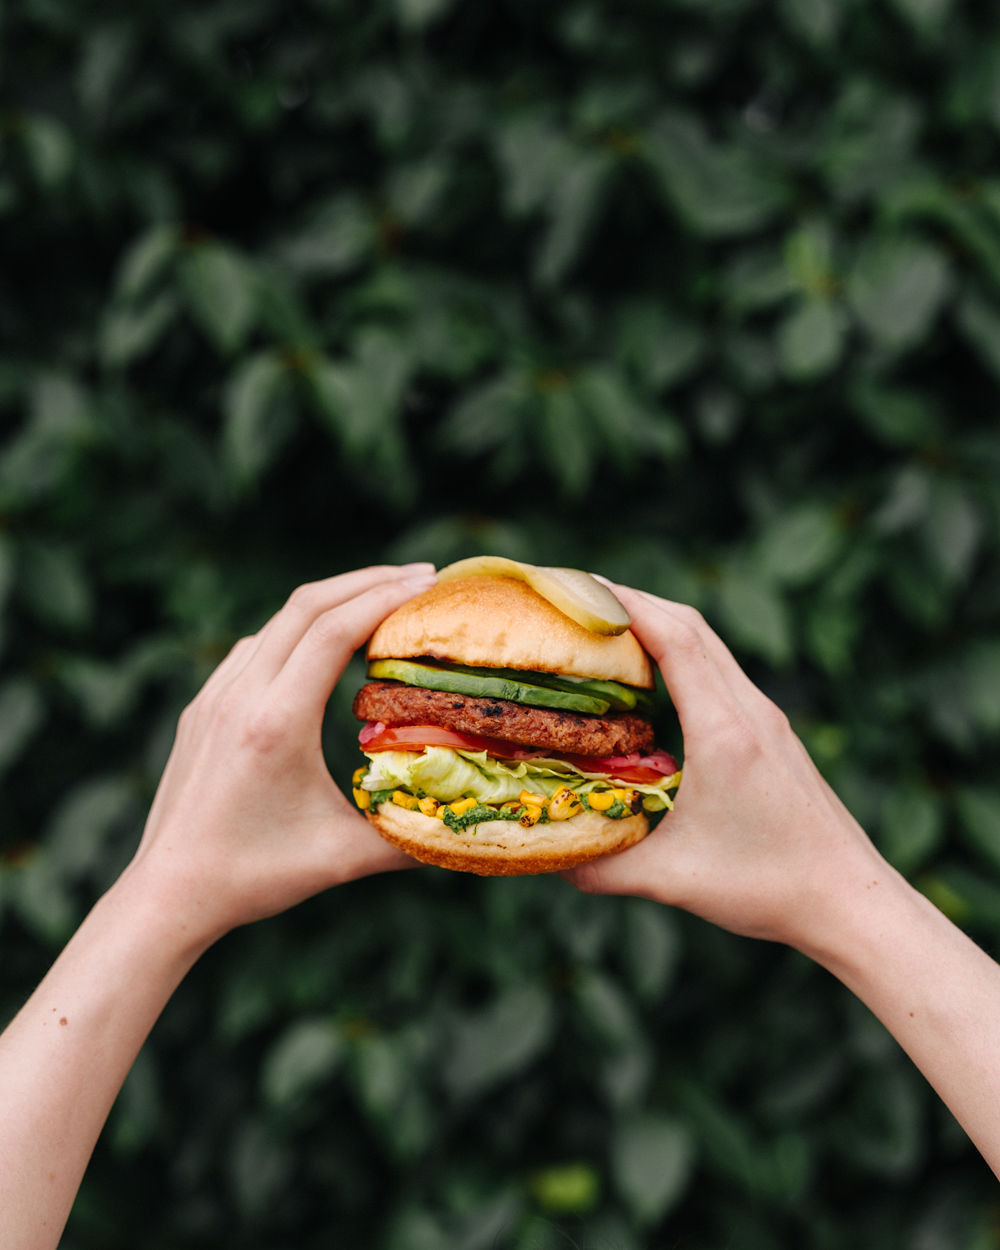 WHITE SPOT is GIVing AWAY 300 FREE AVOCADO BEYOND BUGERS™ - April 15, 2019Beloved BC restaurant chain White Spot is inviting Vancouver burger lovers to join them in celebrating the addition of the 100%-plant-based Beyond Burger® patty to its menu by giving away 300 FREE Avocado Beyond Burgers™ (limit one per person) from its food truck parked at the EasyPark parking lot at the corner of Cambie and West Georgia (688 Cambie Street) starting at 11 a.m. today.Available at all full-service White Spot restaurants in BC and Alberta beginning Monday, April 15, White Spot's Avocado Beyond Burger features a hearty four-ounce chargrilled Beyond Burger patty, fresh avocado, pickled onions, roasted corn, crisp lettuce, vine-ripened tomatoes, jalapeño ranch and edamame hummus